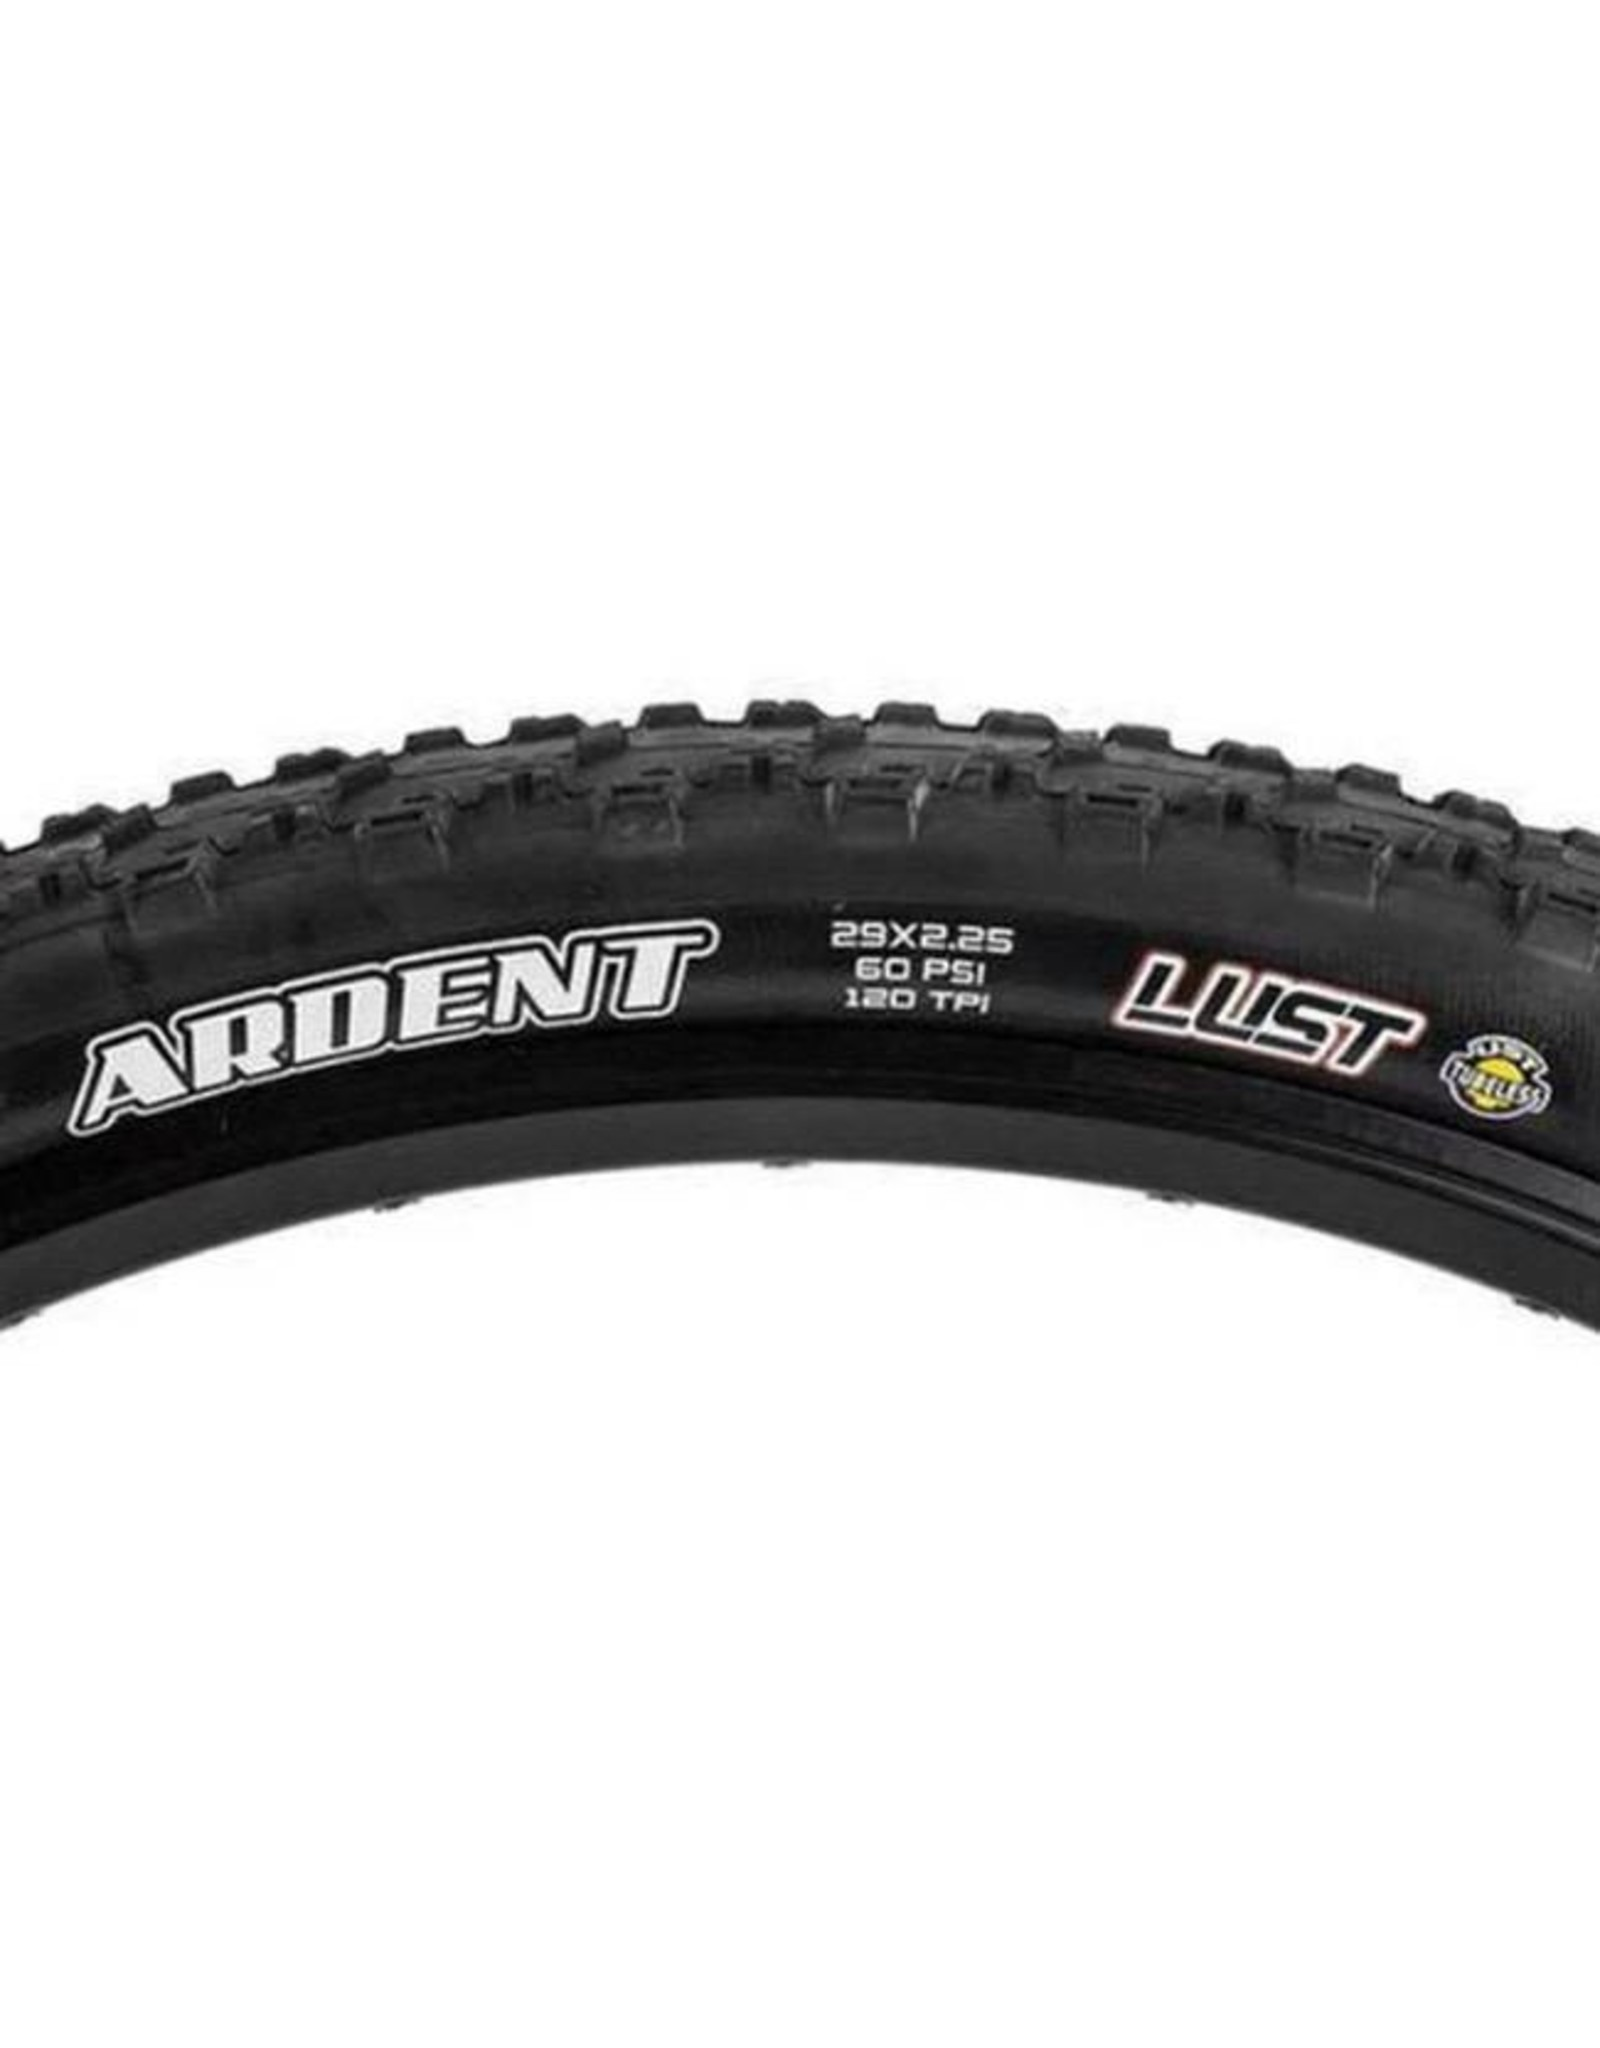 "Maxxis Maxxis Ardent Tire: 29 x 2.25"", Folding, 120tpi, Dual Compound, LUST/UST, Black"